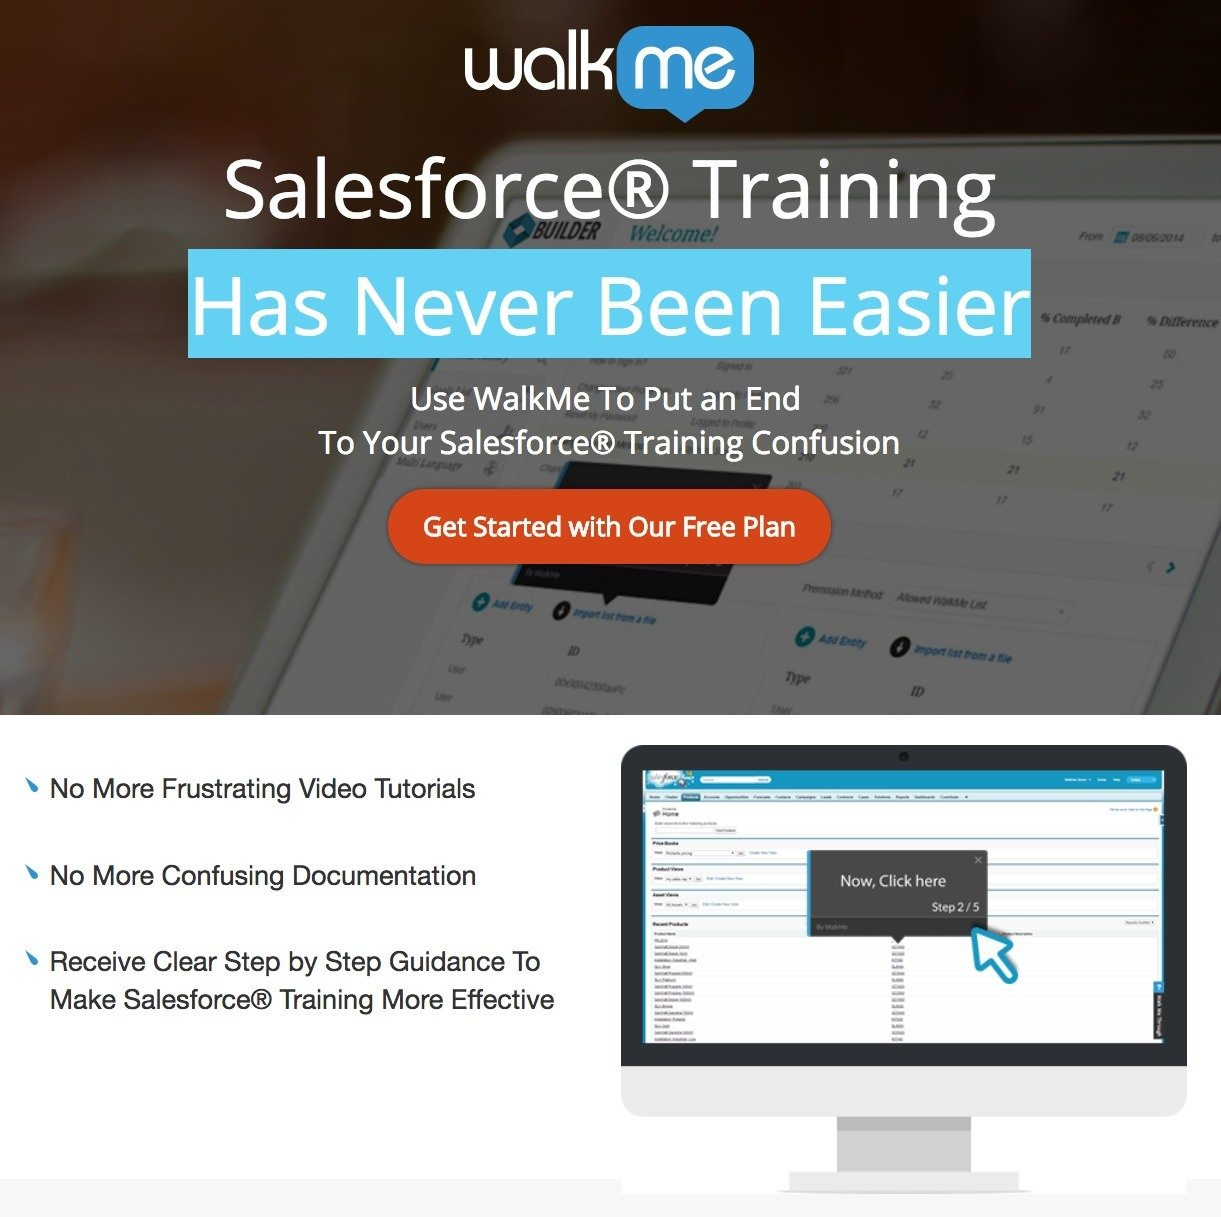 This picture shows marketers how WalkMe uses a YouTube landing page to generate traffic and sales from online video watchers.